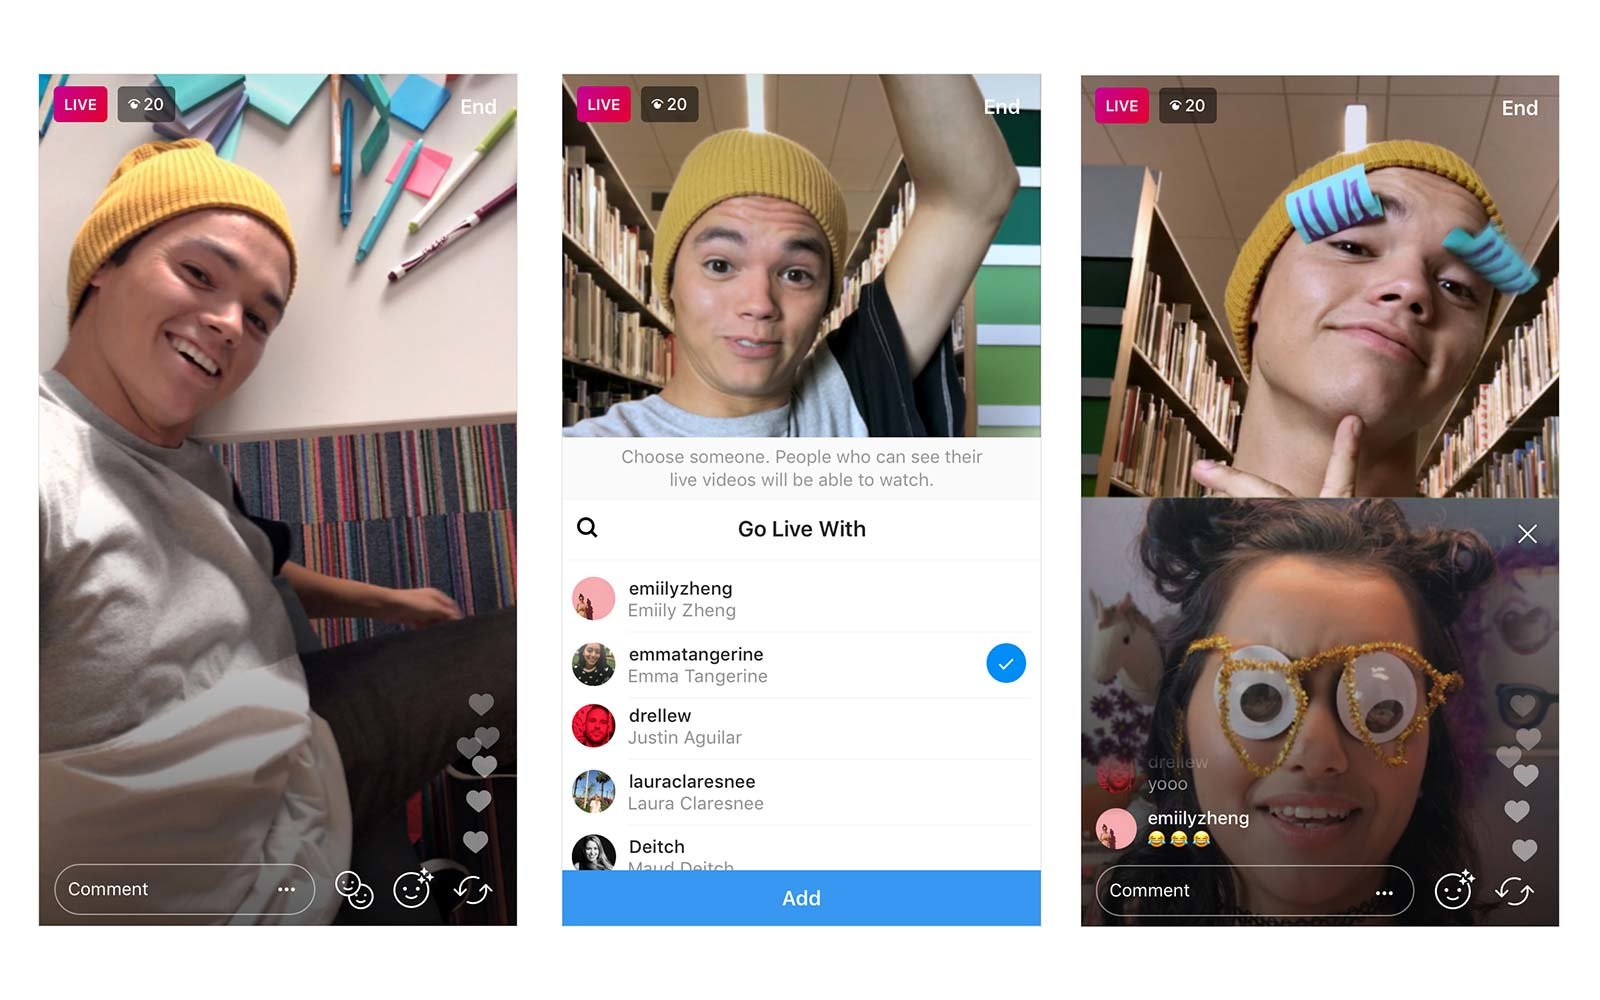 instagram global live stream friends collaborate